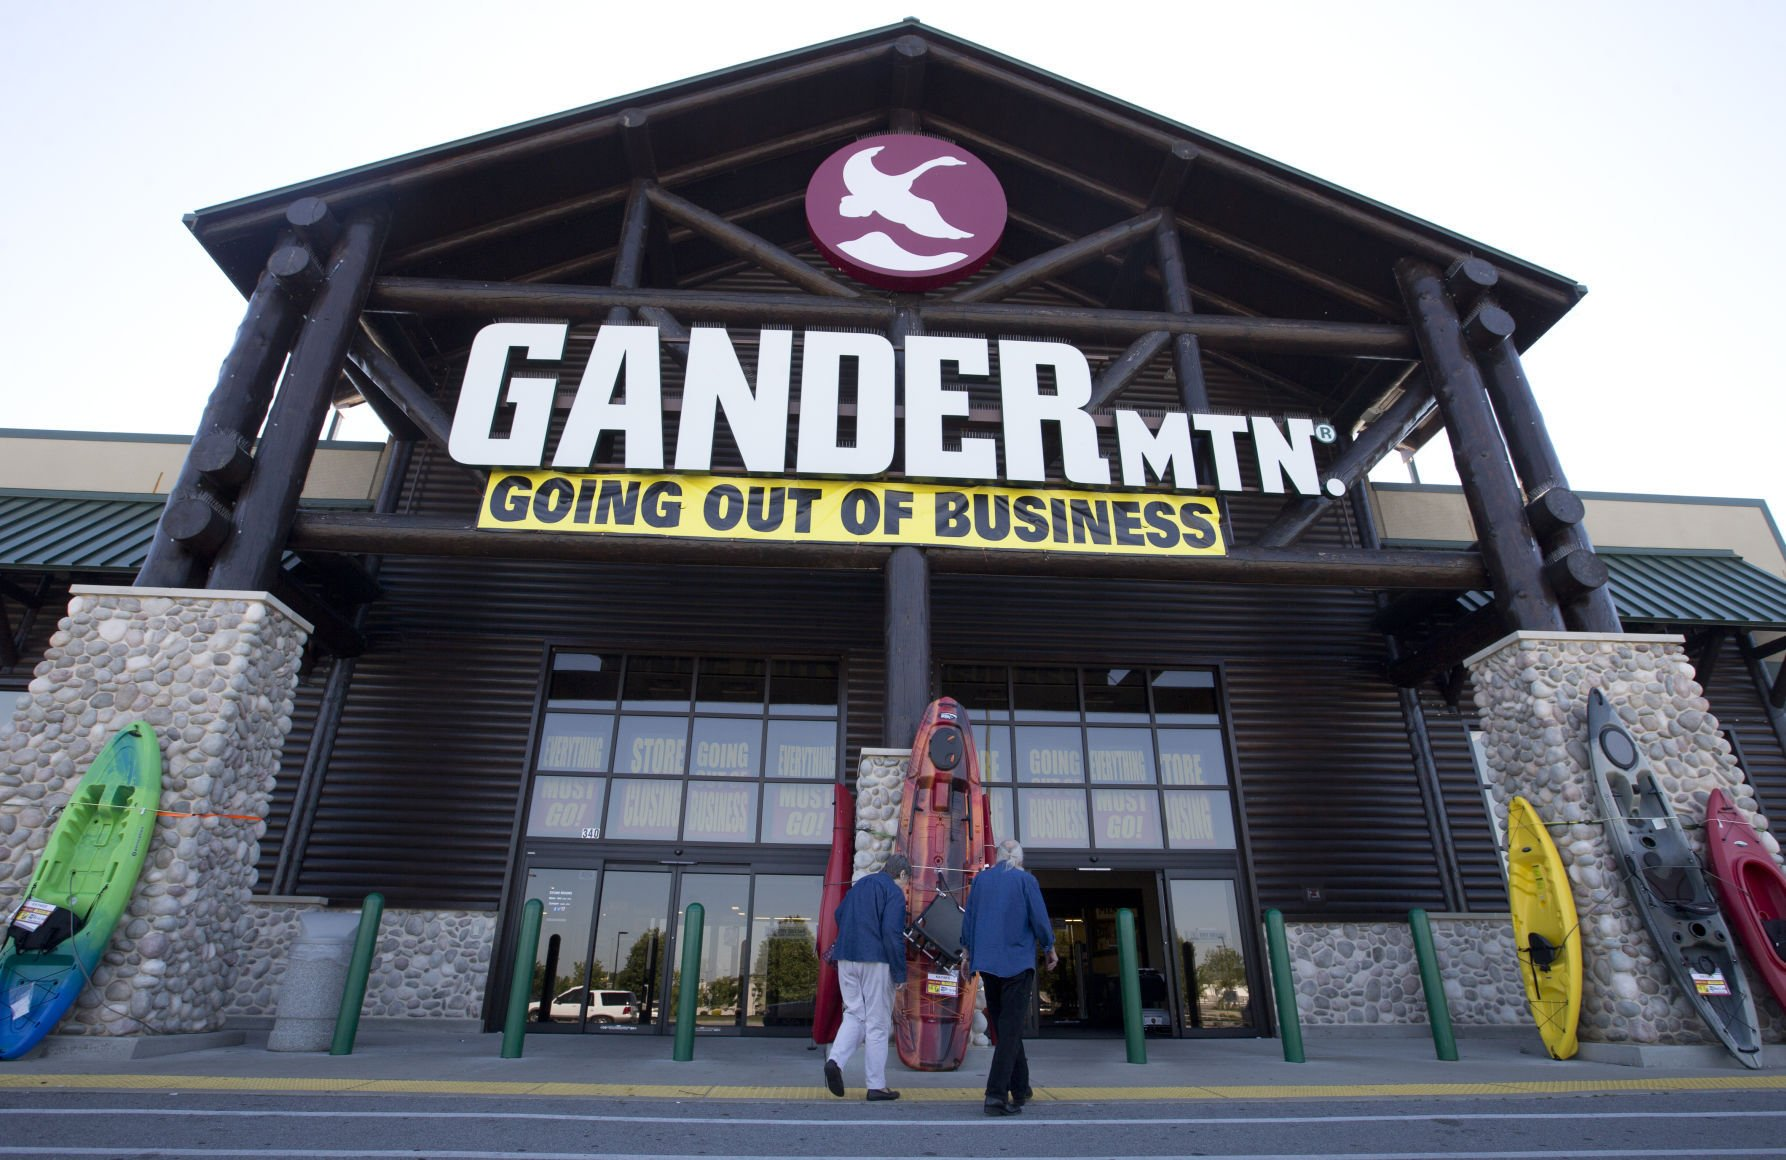 New owner: Gander Mountain won't close | Local News | timesdaily.com